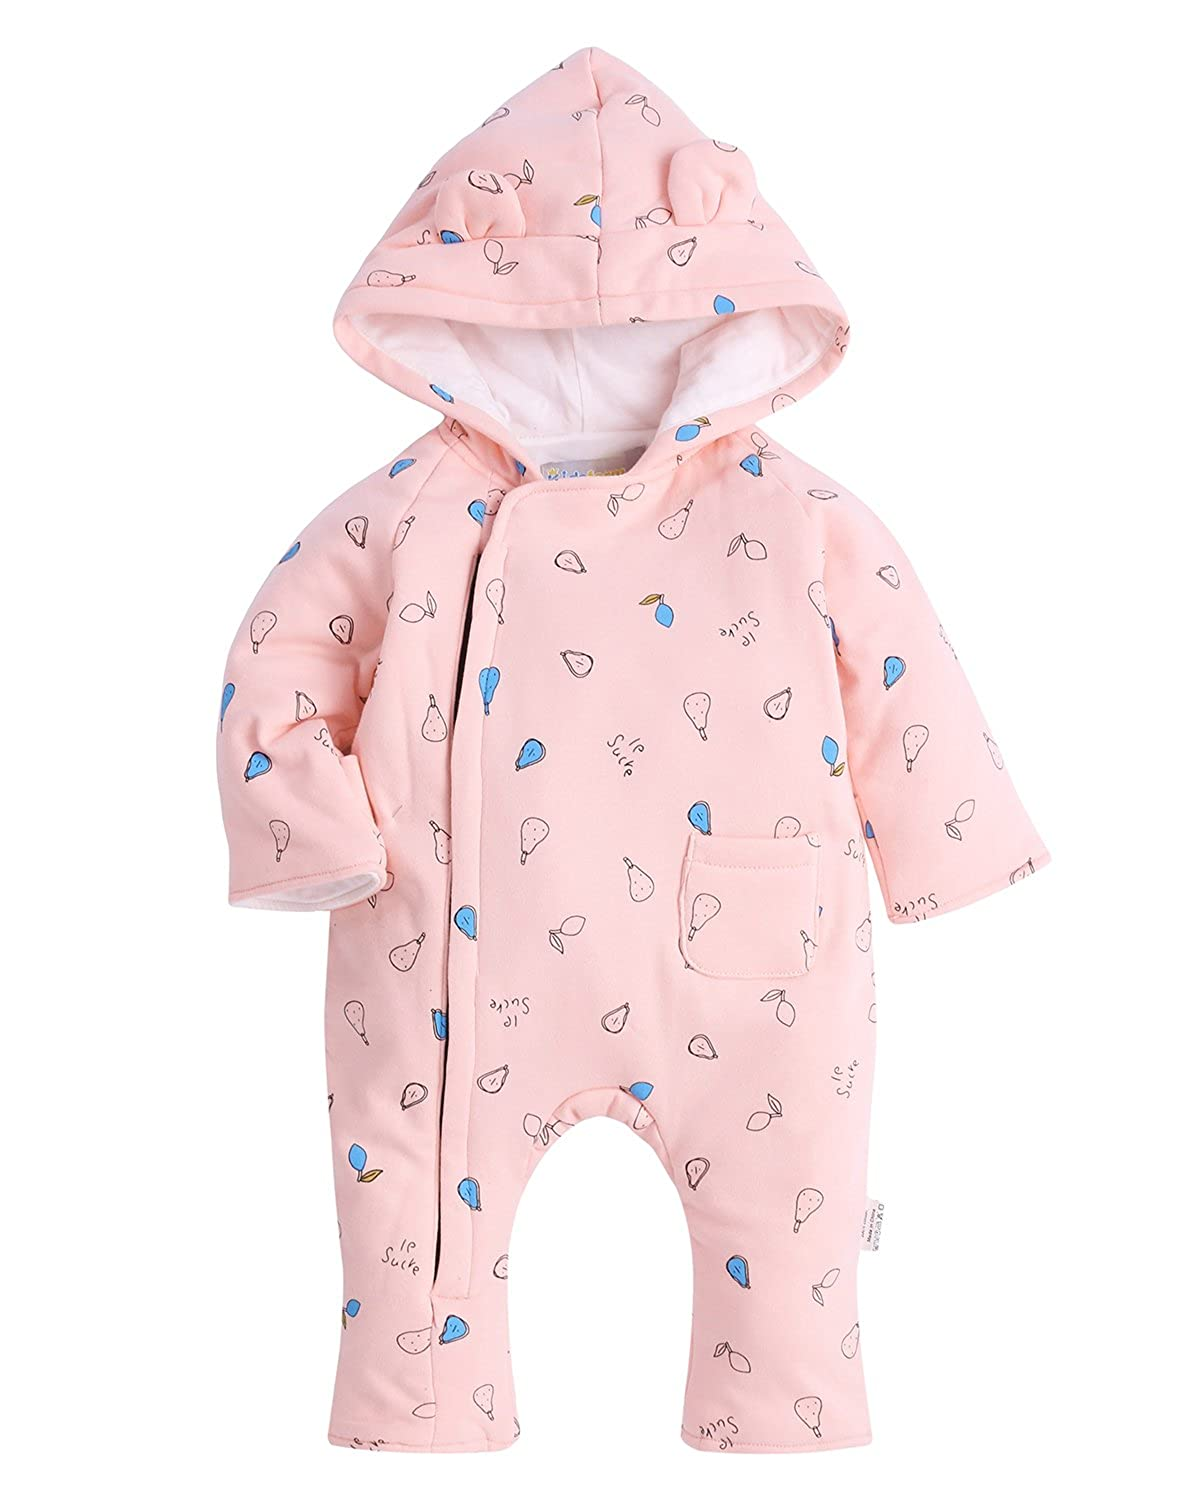 Kidsform Unisex Baby Winter Jumpsuit Hooded Romper Fleece Onesie All in One Snow Suit Outfits KIDSFORMyonnciiuk3353